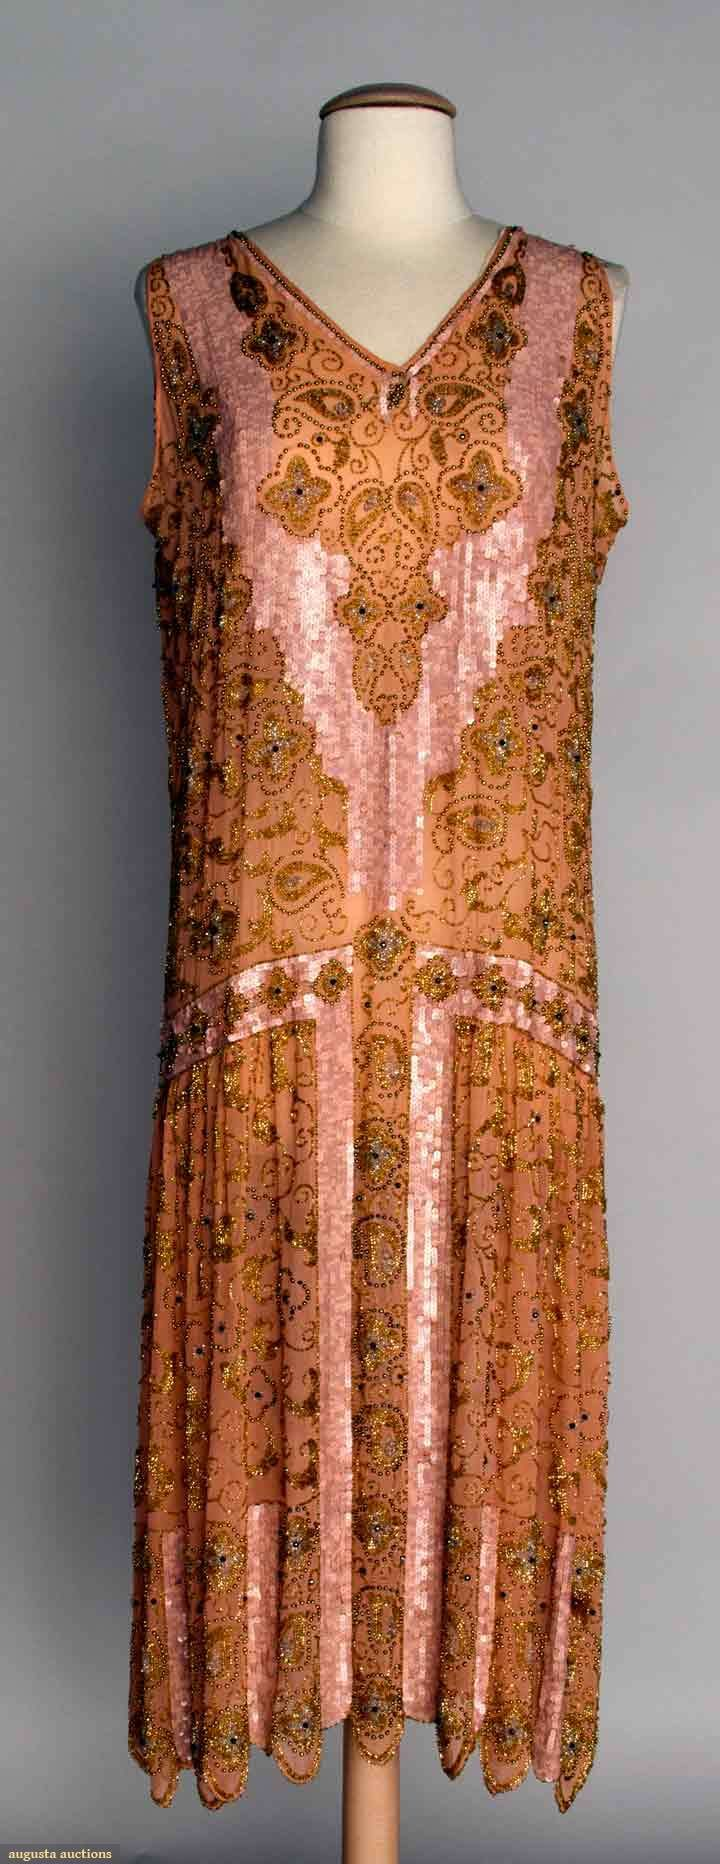 "BEADED SILK CHIFFON DRESS, 1920s Peach chiffon, scalloped hem, gold & crystal beading w/ irridescent pink sequins, B 38.5"", W 38"", L 45"", (minor bead loss) excellent."